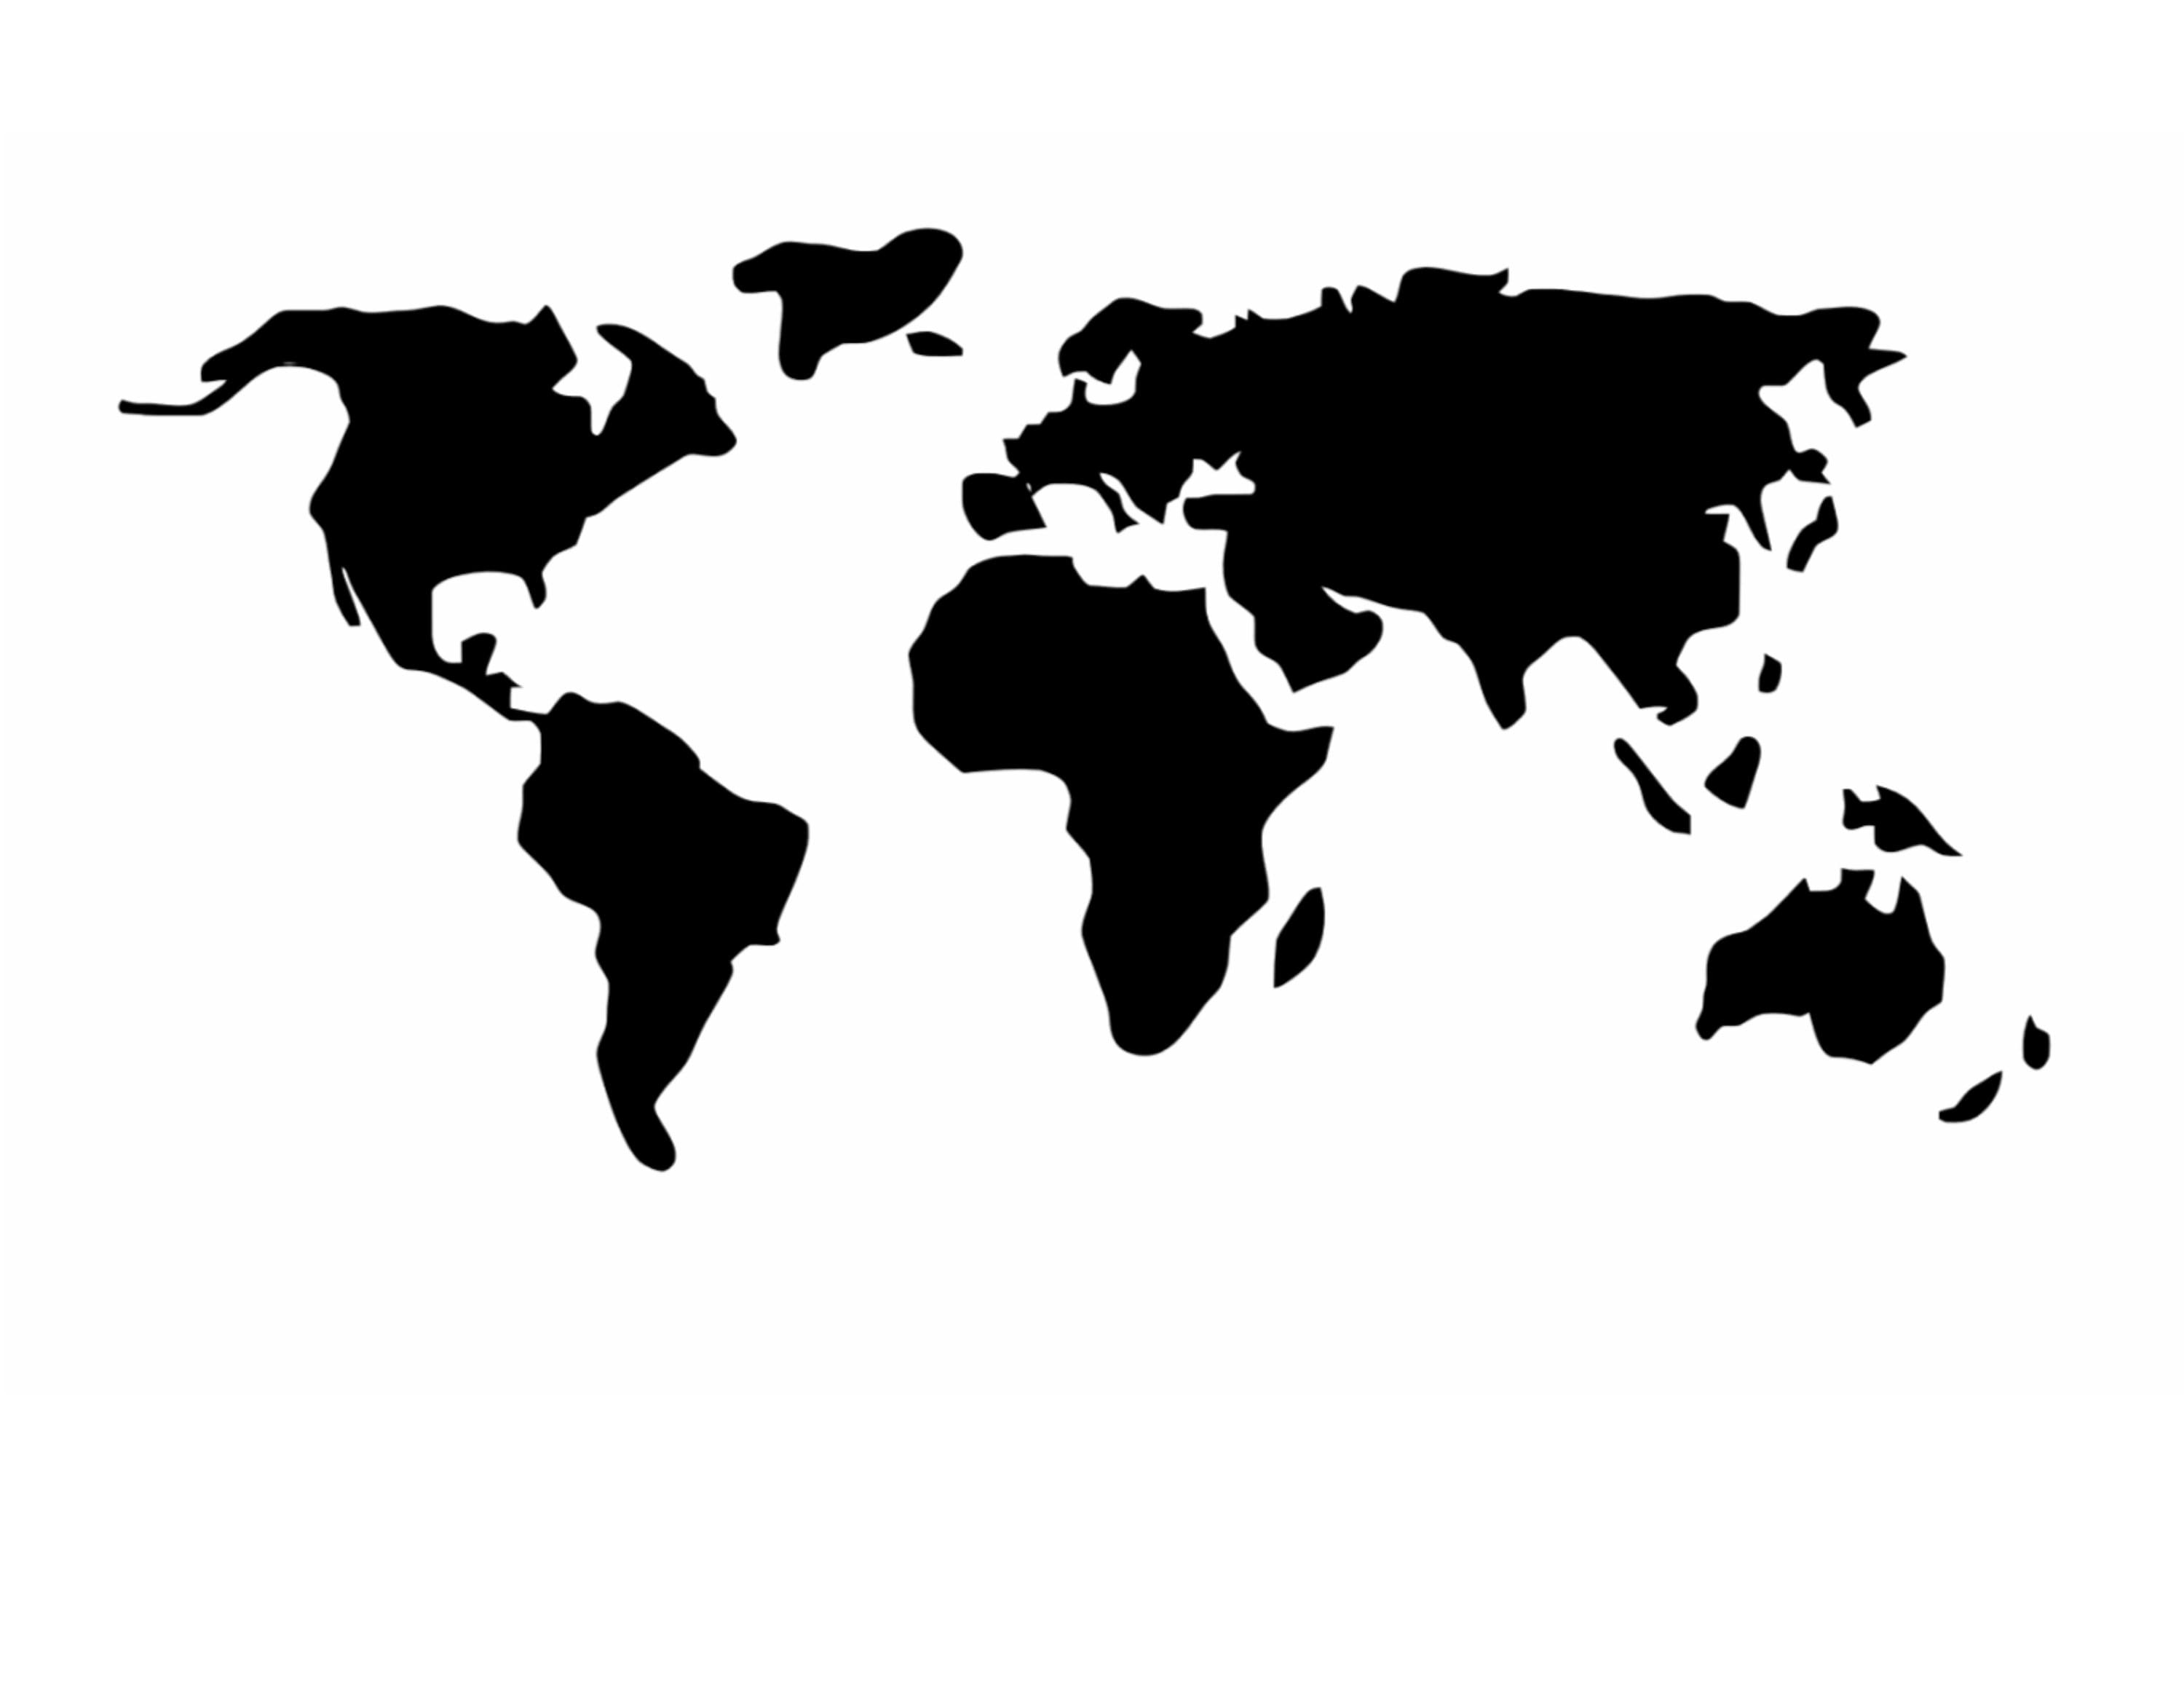 World Map Stencil World Map Stencil Made from 4 Ply Mat Board 15x24 Background Size World Map Stencil